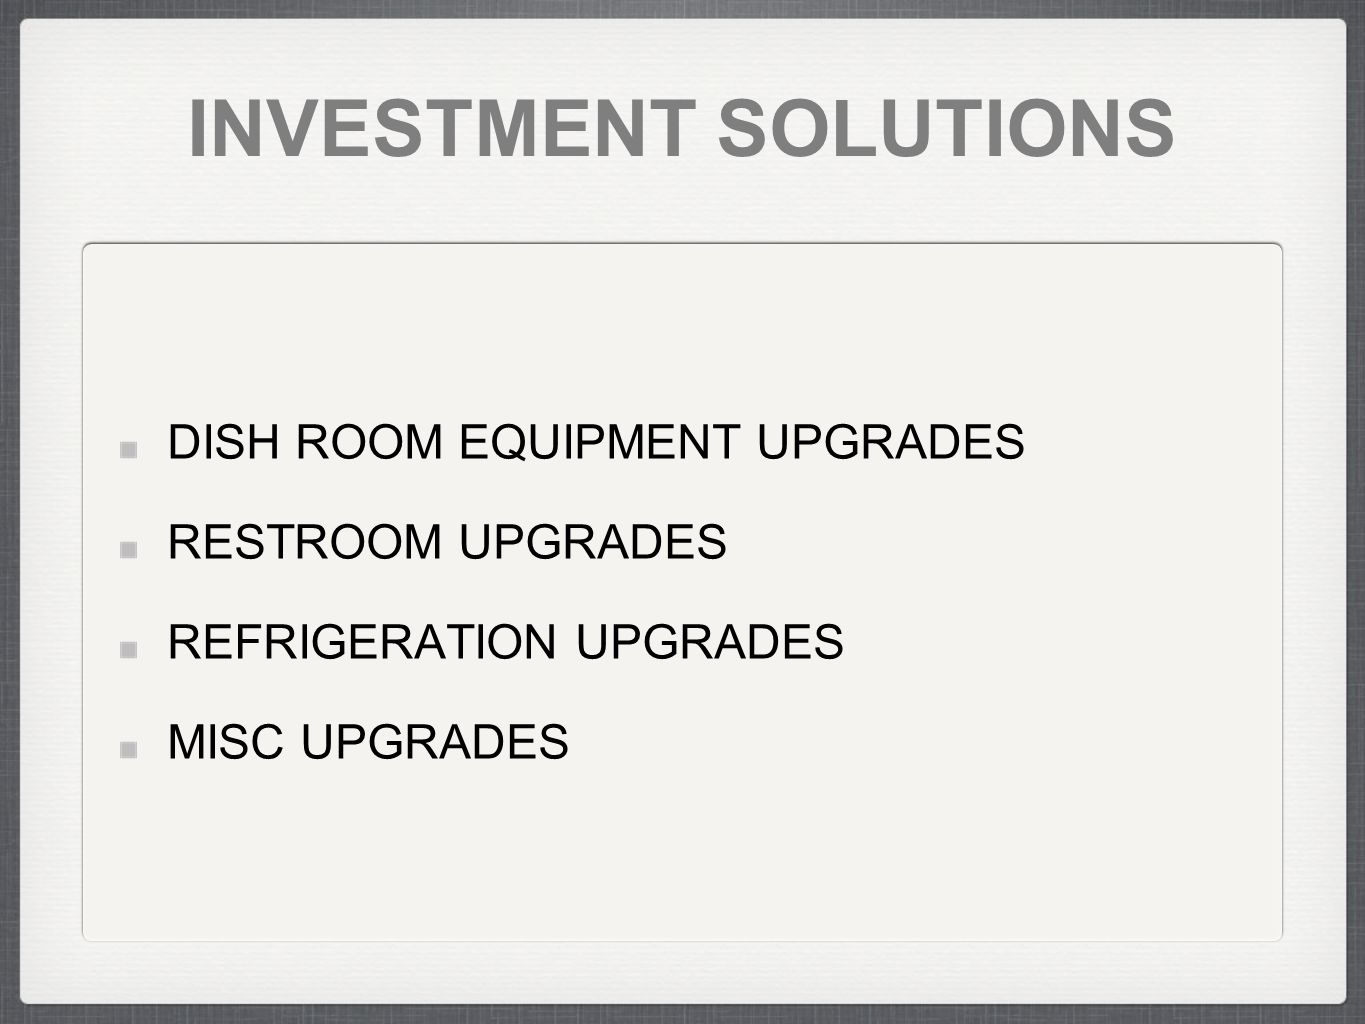 INVESTMENT SOLUTIONS DISH ROOM EQUIPMENT UPGRADES RESTROOM UPGRADES REFRIGERATION UPGRADES MISC UPGRADES